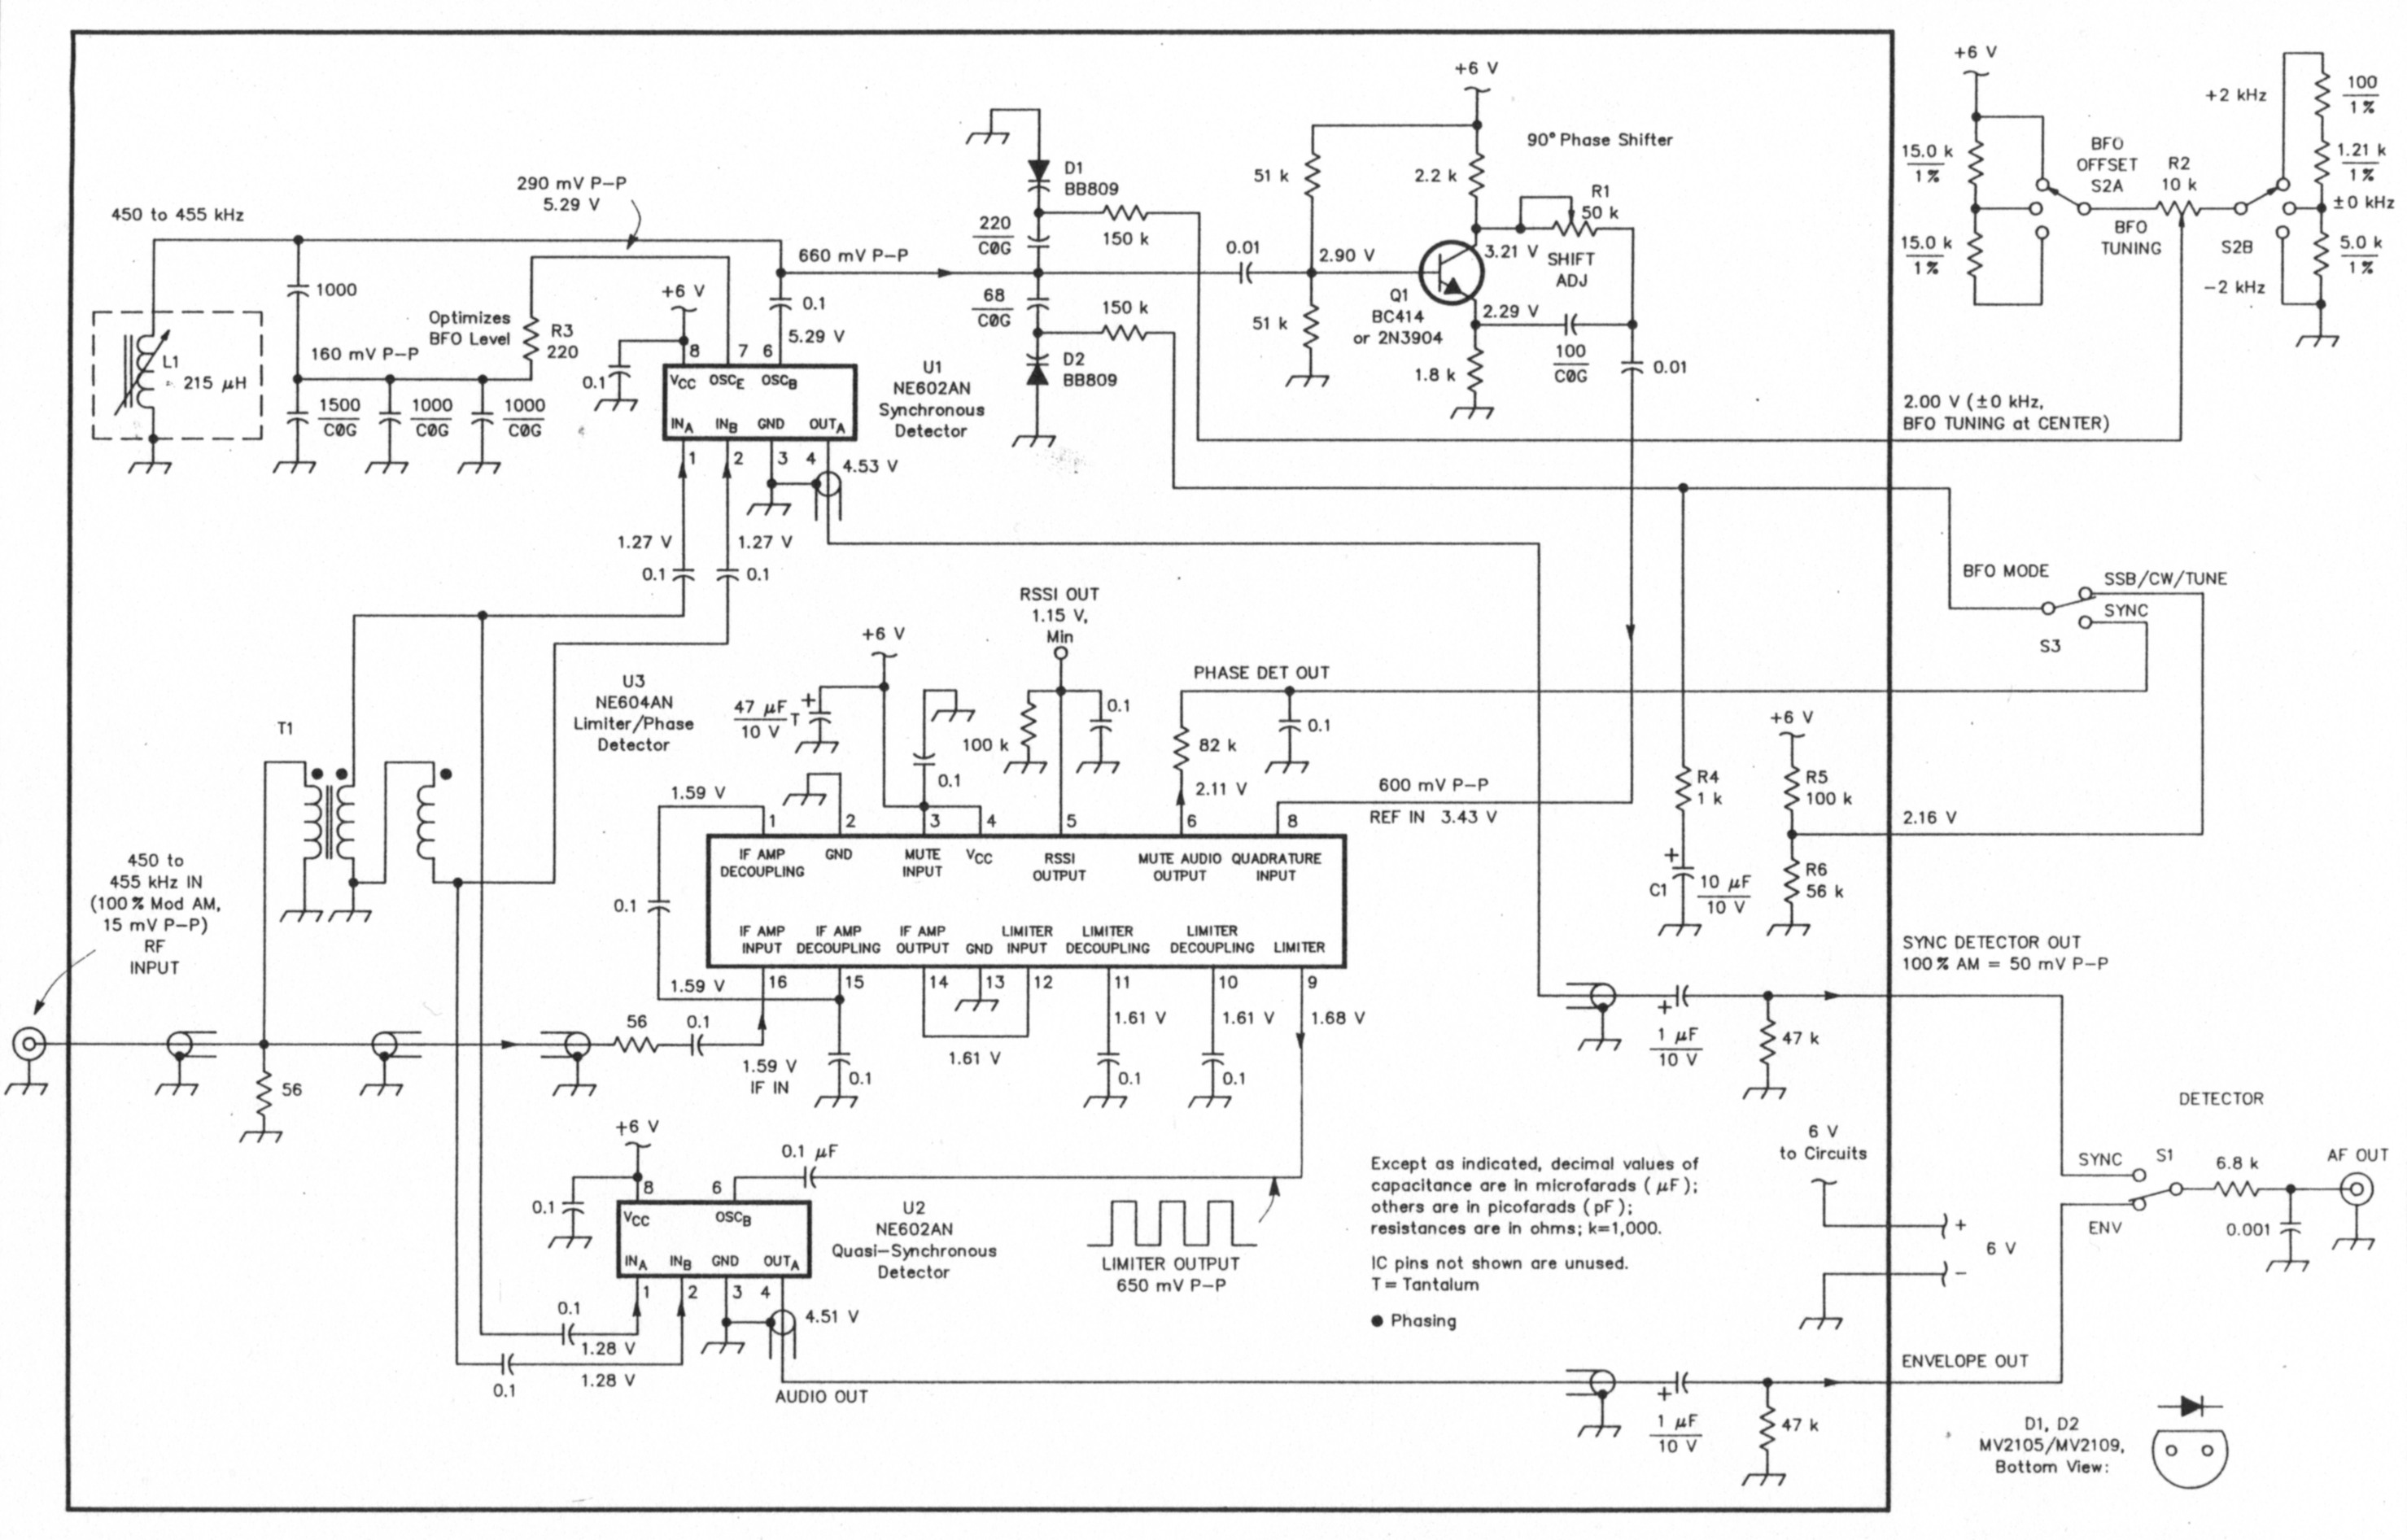 A Synchronous Detector For Am Transmissions Schematic Circuit Diagram Audio Amplifier Circuits Fig 1 The Oh2gf Operates In 450 To 455 Khz Region Except As Otherwise Specified Its Fixed Value Resistors Are 4 W